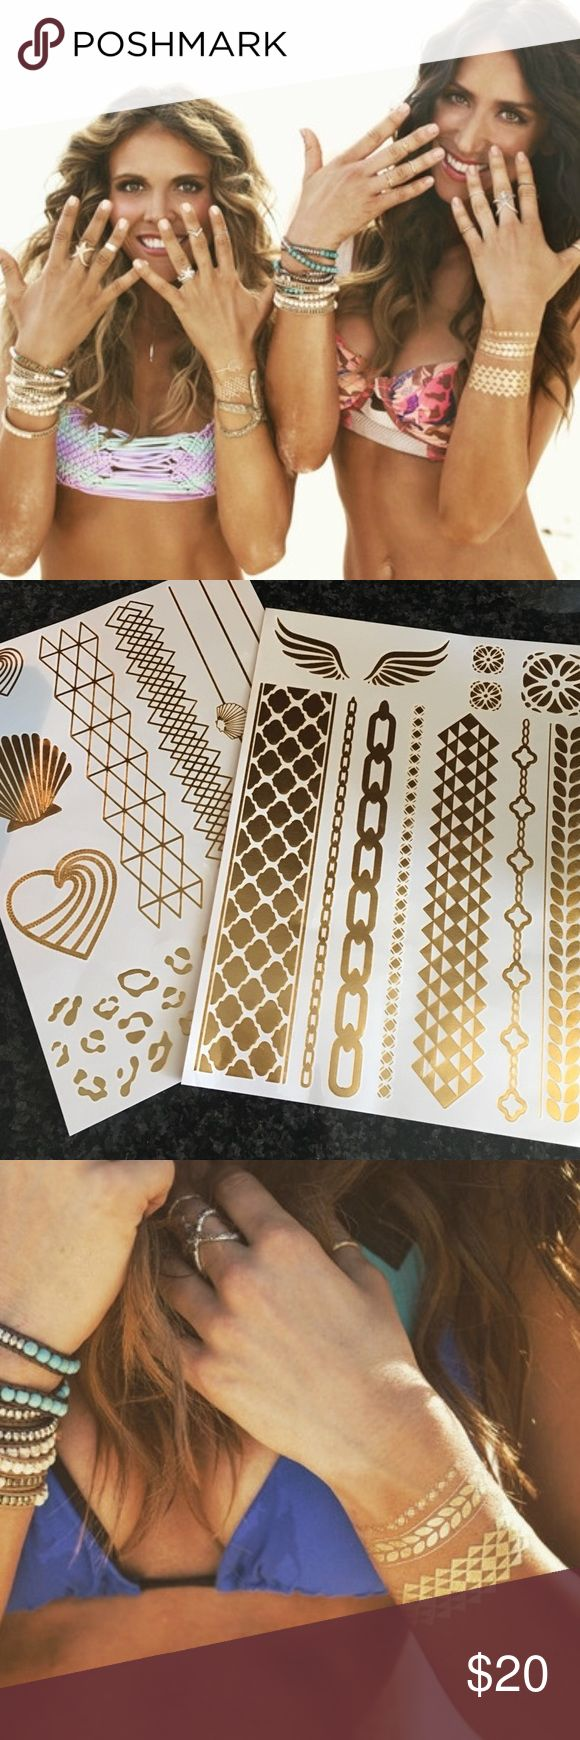 Beautiful TIU Flash Tattoo Set!  Shimmer Tattoos  Shine this summer with beautiful gold and silver shimmer temporary tattoos!   Beautiful geometric patterns, bracelets and even some Tone It Up hearts. Comes with two sheets of metallic temporary tattoos that are easy to apply with a little warm water.   Instructions included! Tone it up Accessories